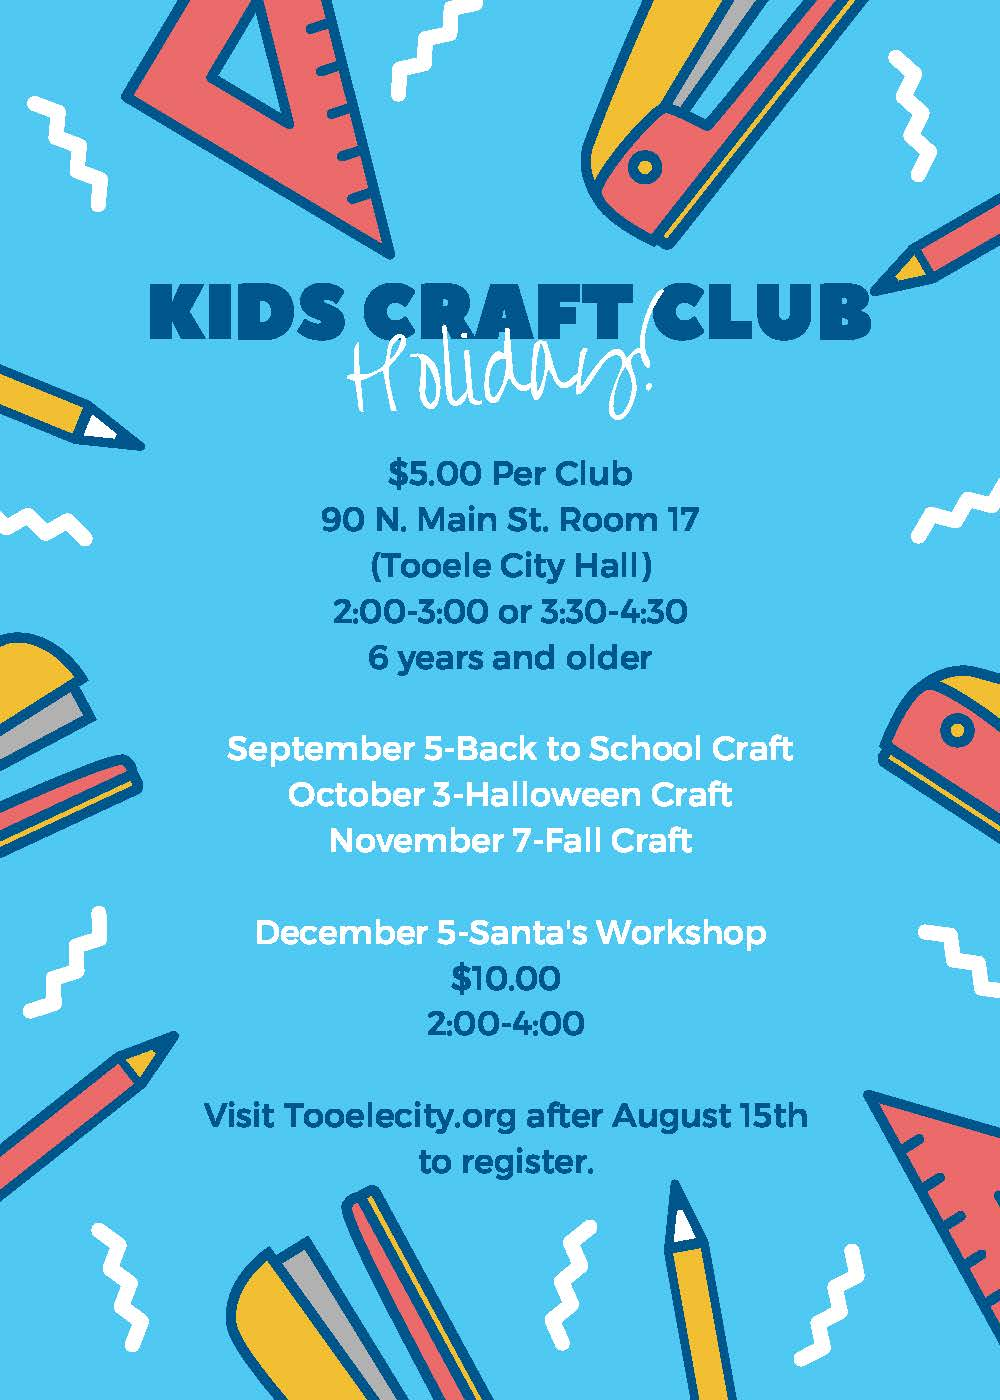 Kids Craft Club Holidays 2018